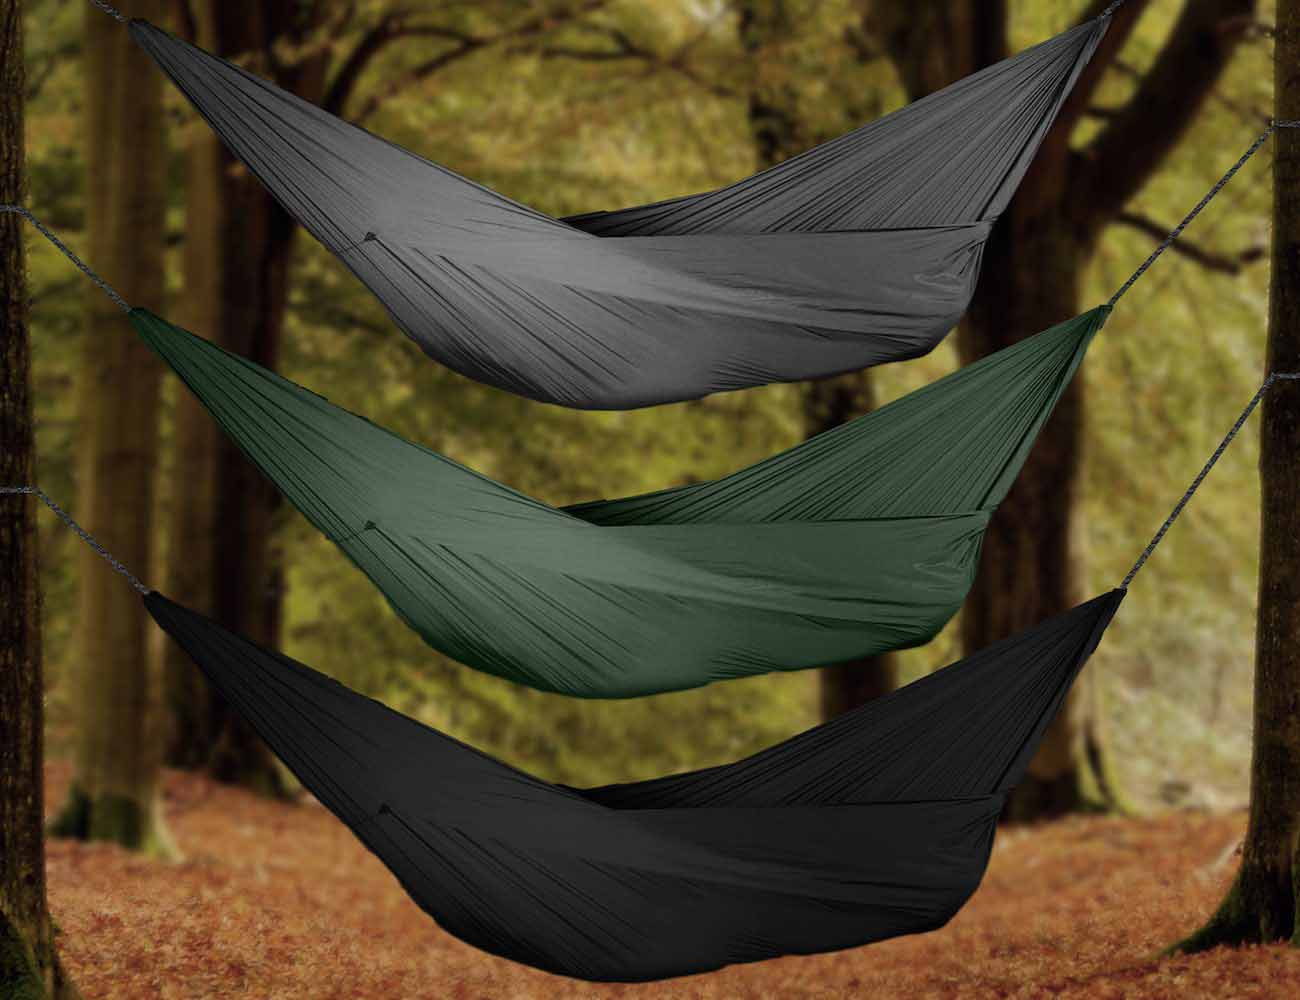 The GO! Hammock: Amazingly Comfortable, Durable & Portable